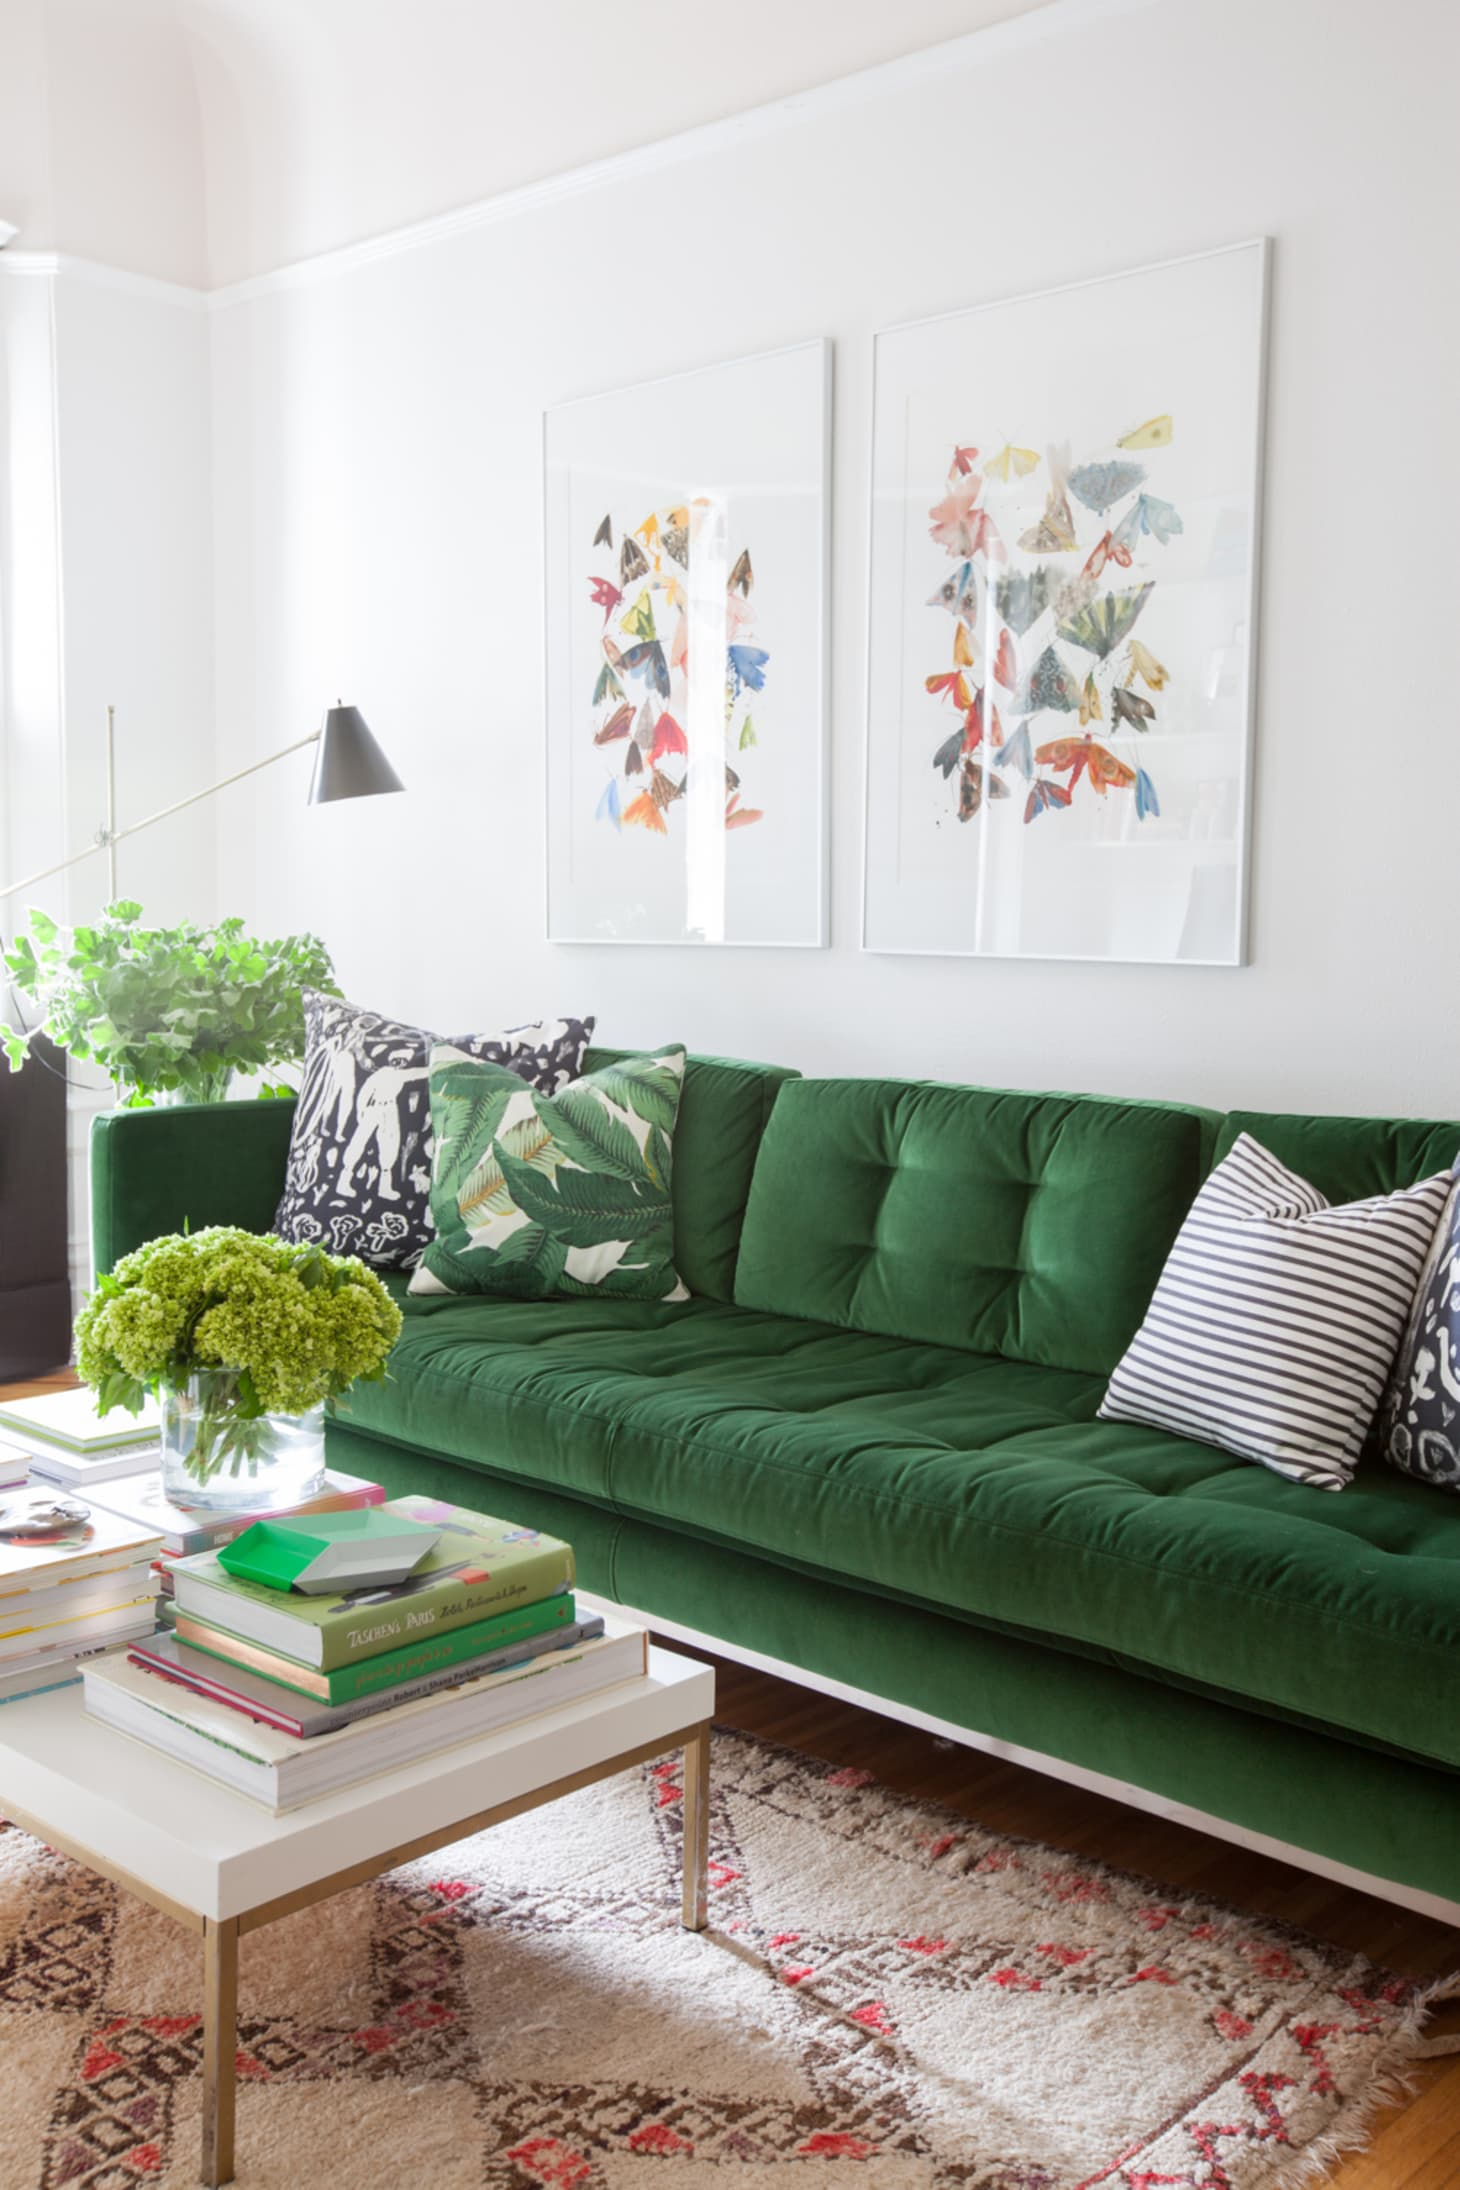 The Couch Trend for 2017: Stylish Emerald Green Sofas ...